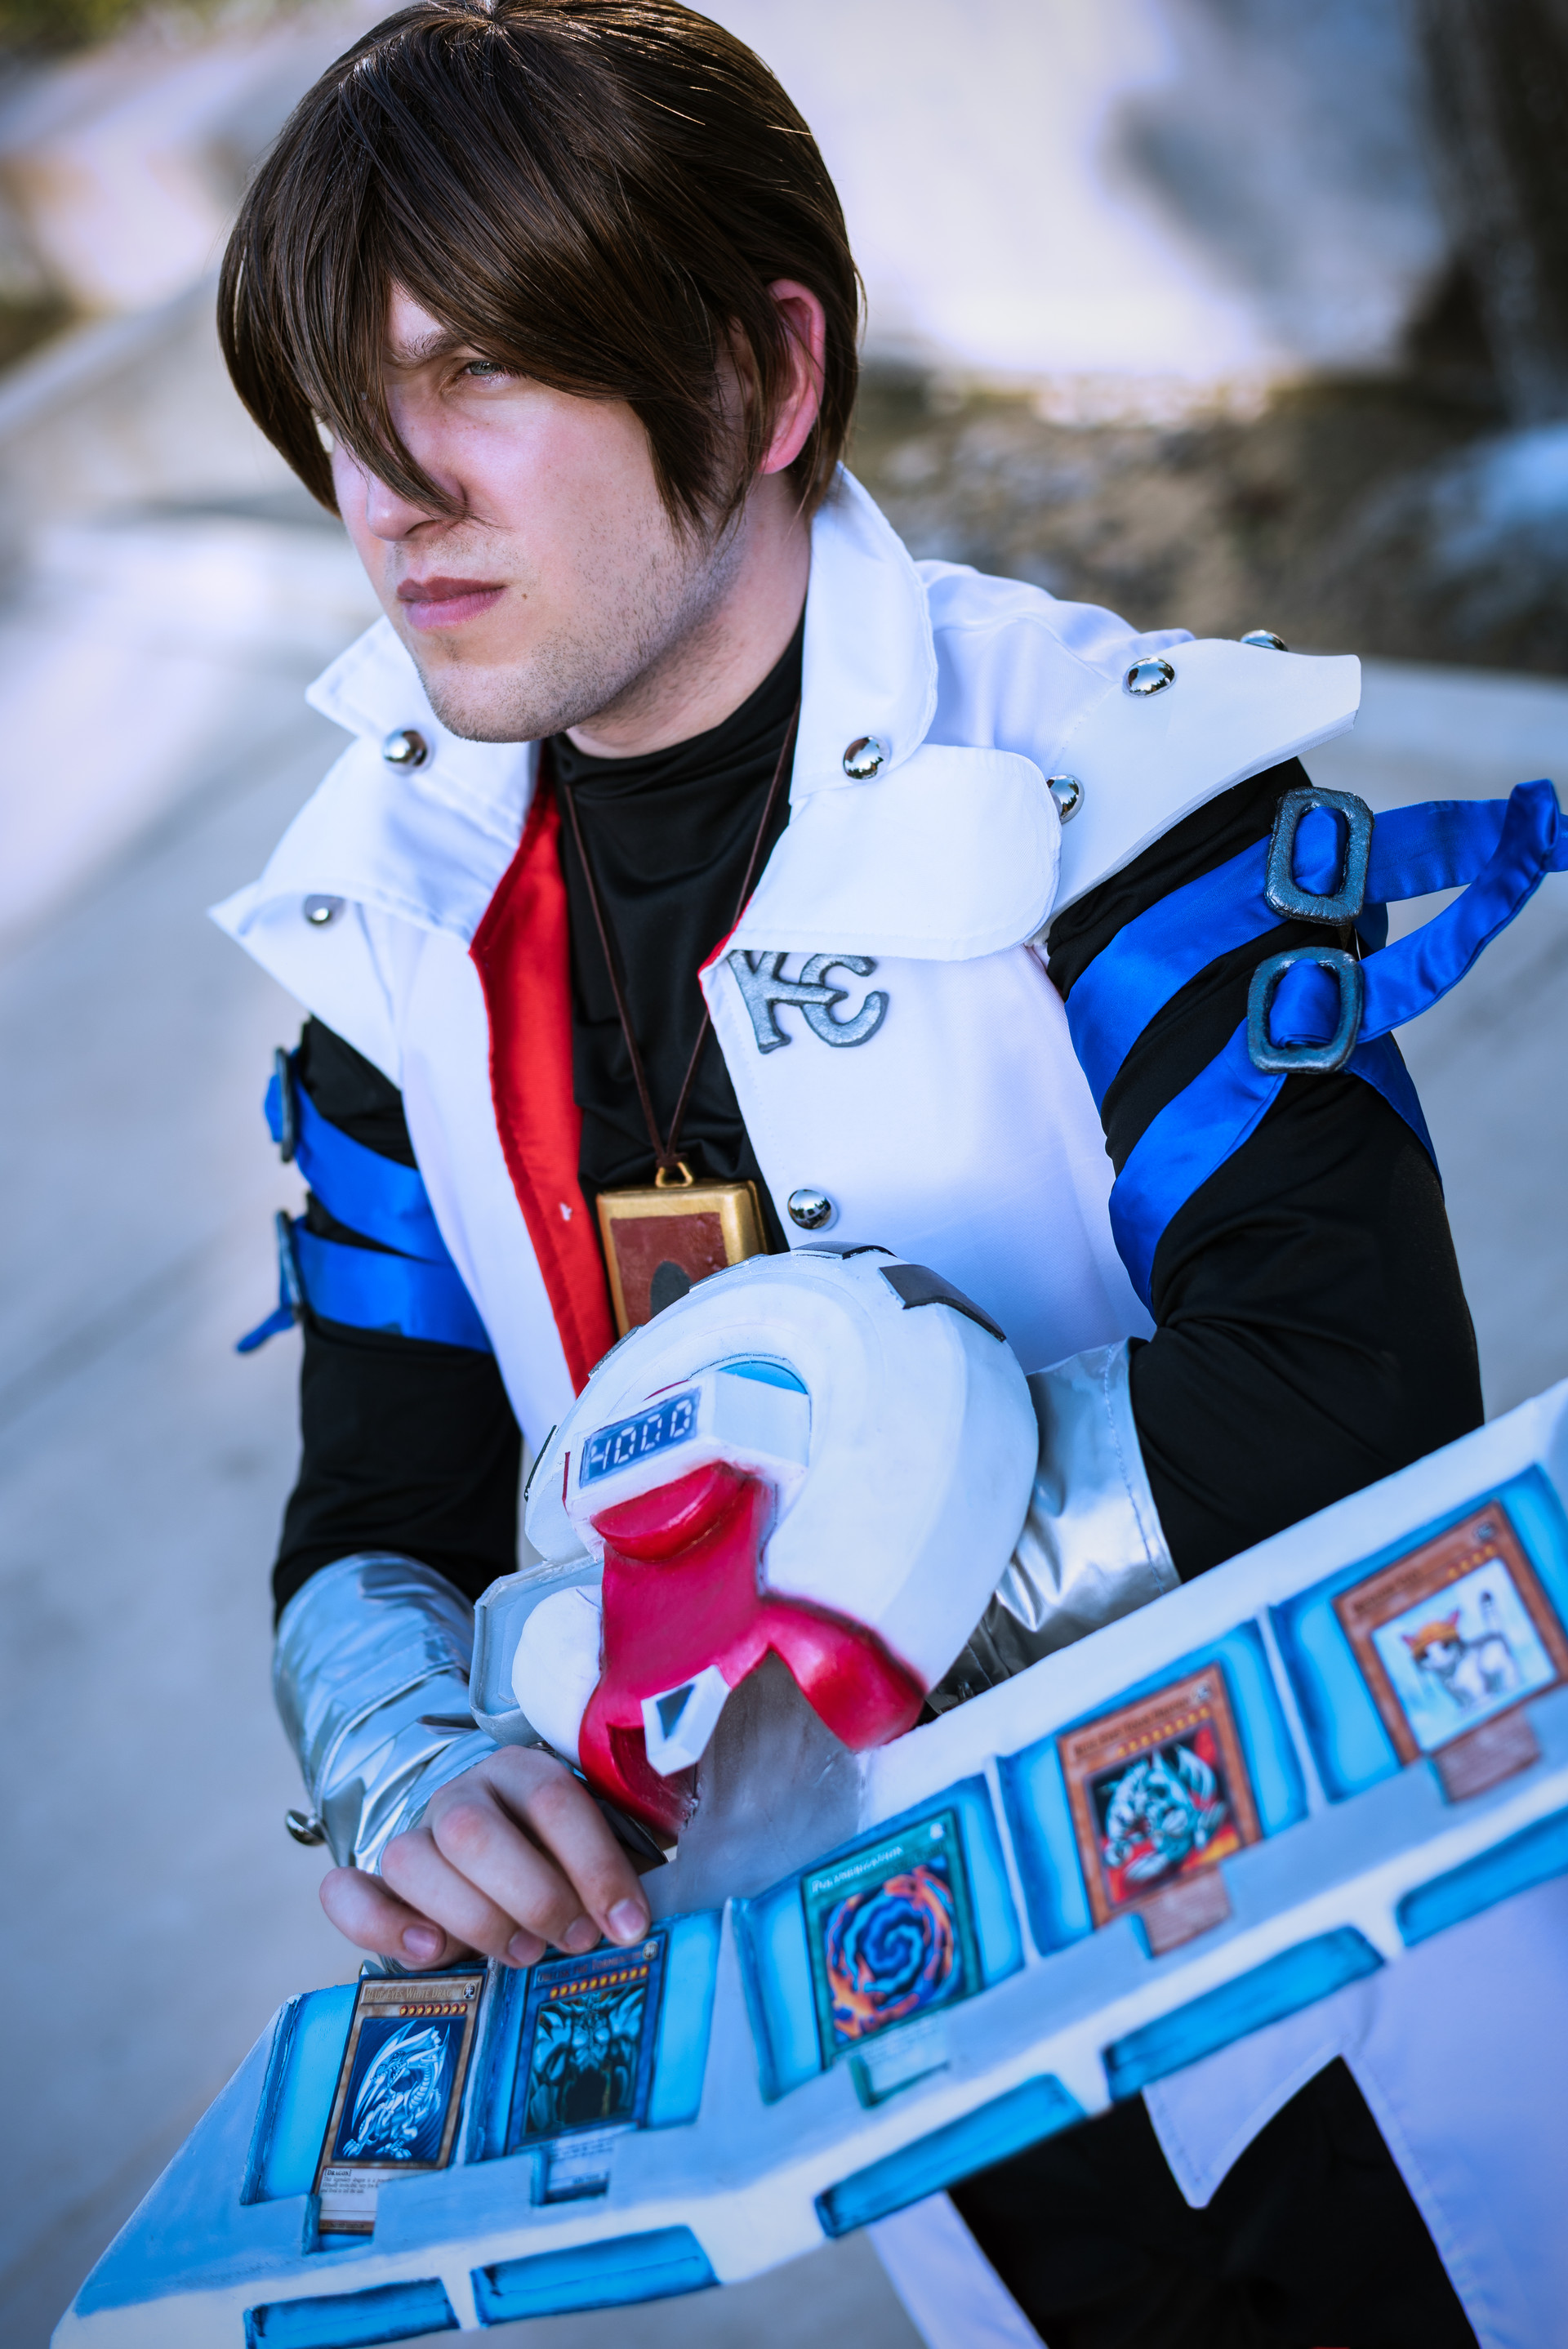 Seto Kaiba cosplayer, @syzygy_cosplay_, from Yu-Gi-Oh!